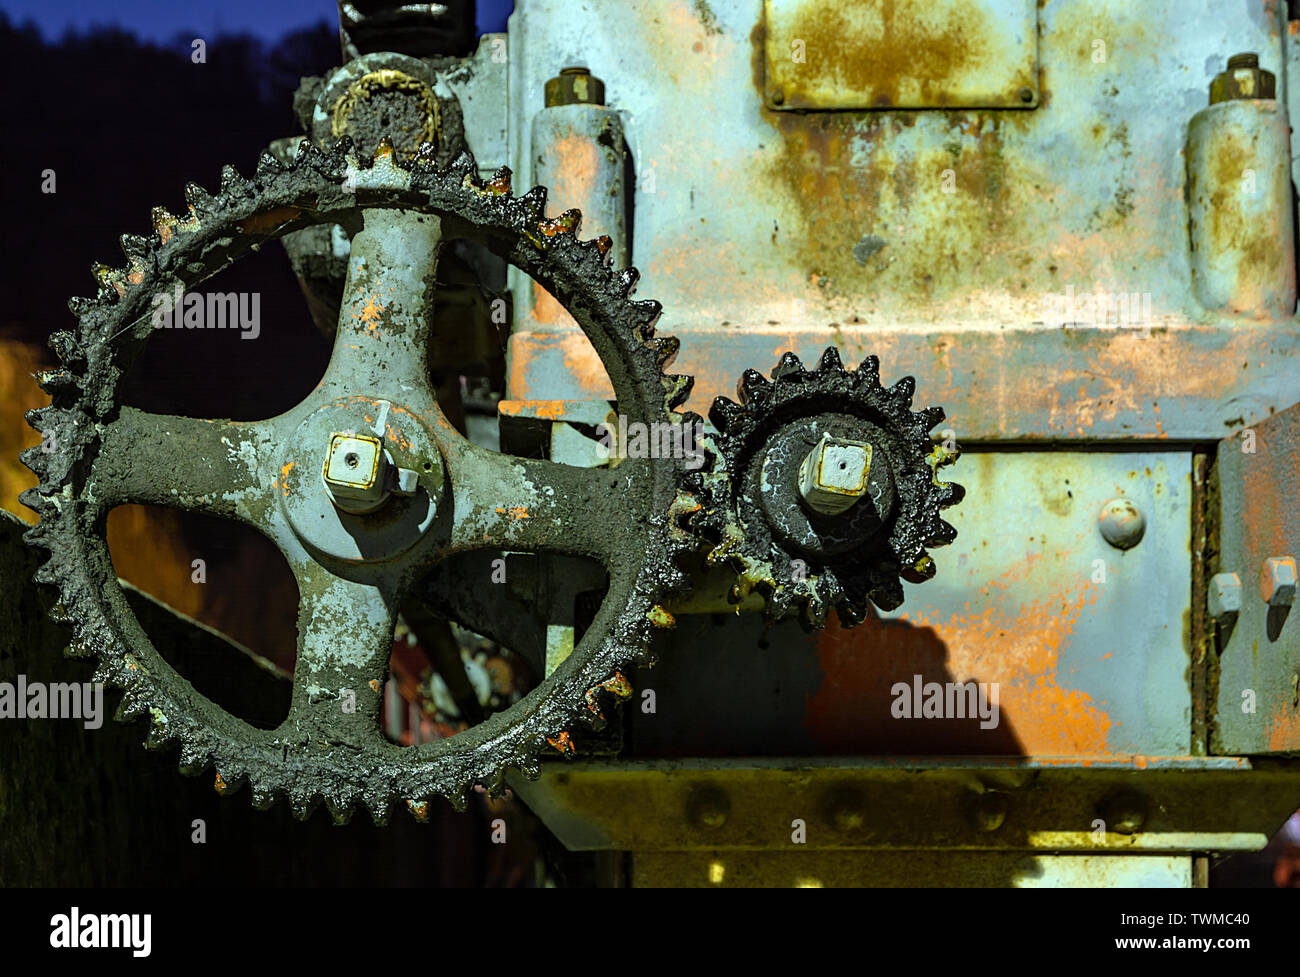 Vintage oily and rusty illuminated cogwheel at night - Stock Image